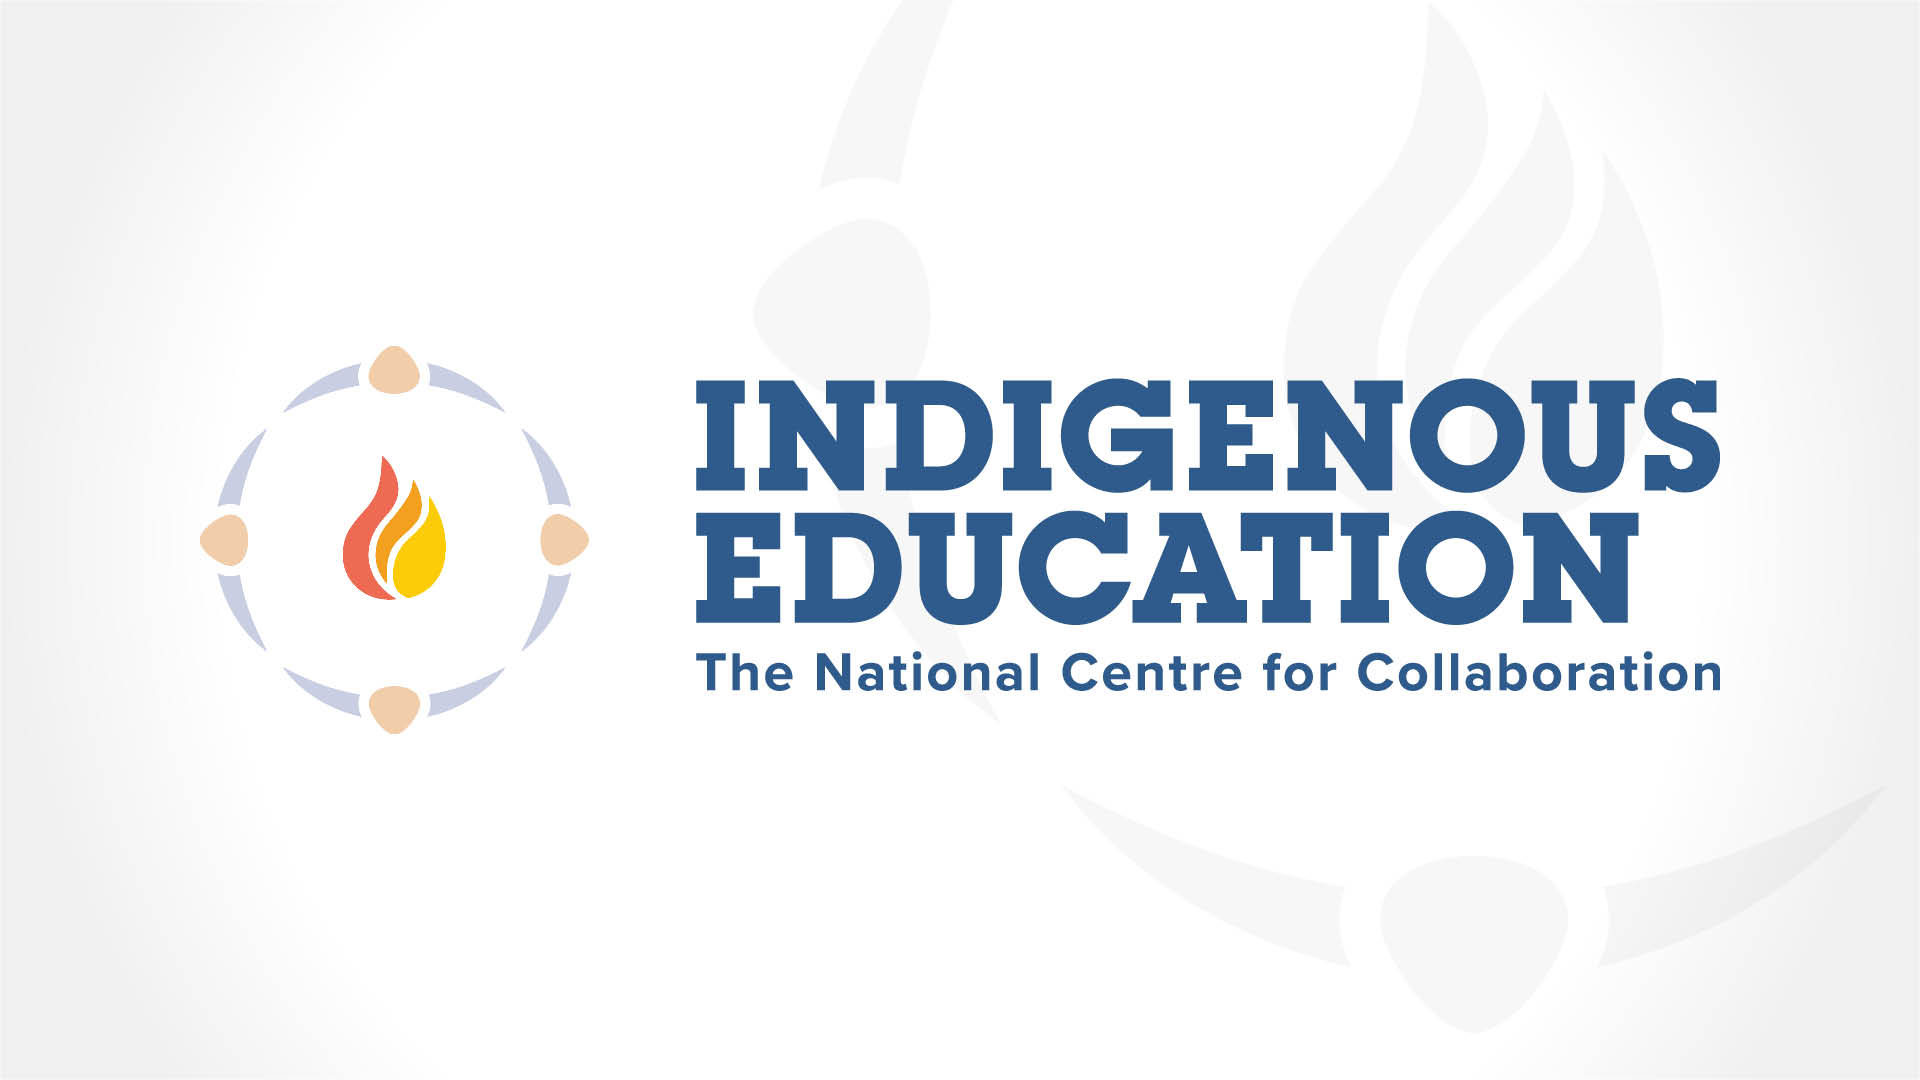 National Centre for Collaboration in Indigenous Education, Brand, NCCIE Logo, Visual Identity Guide, Portfolio Image